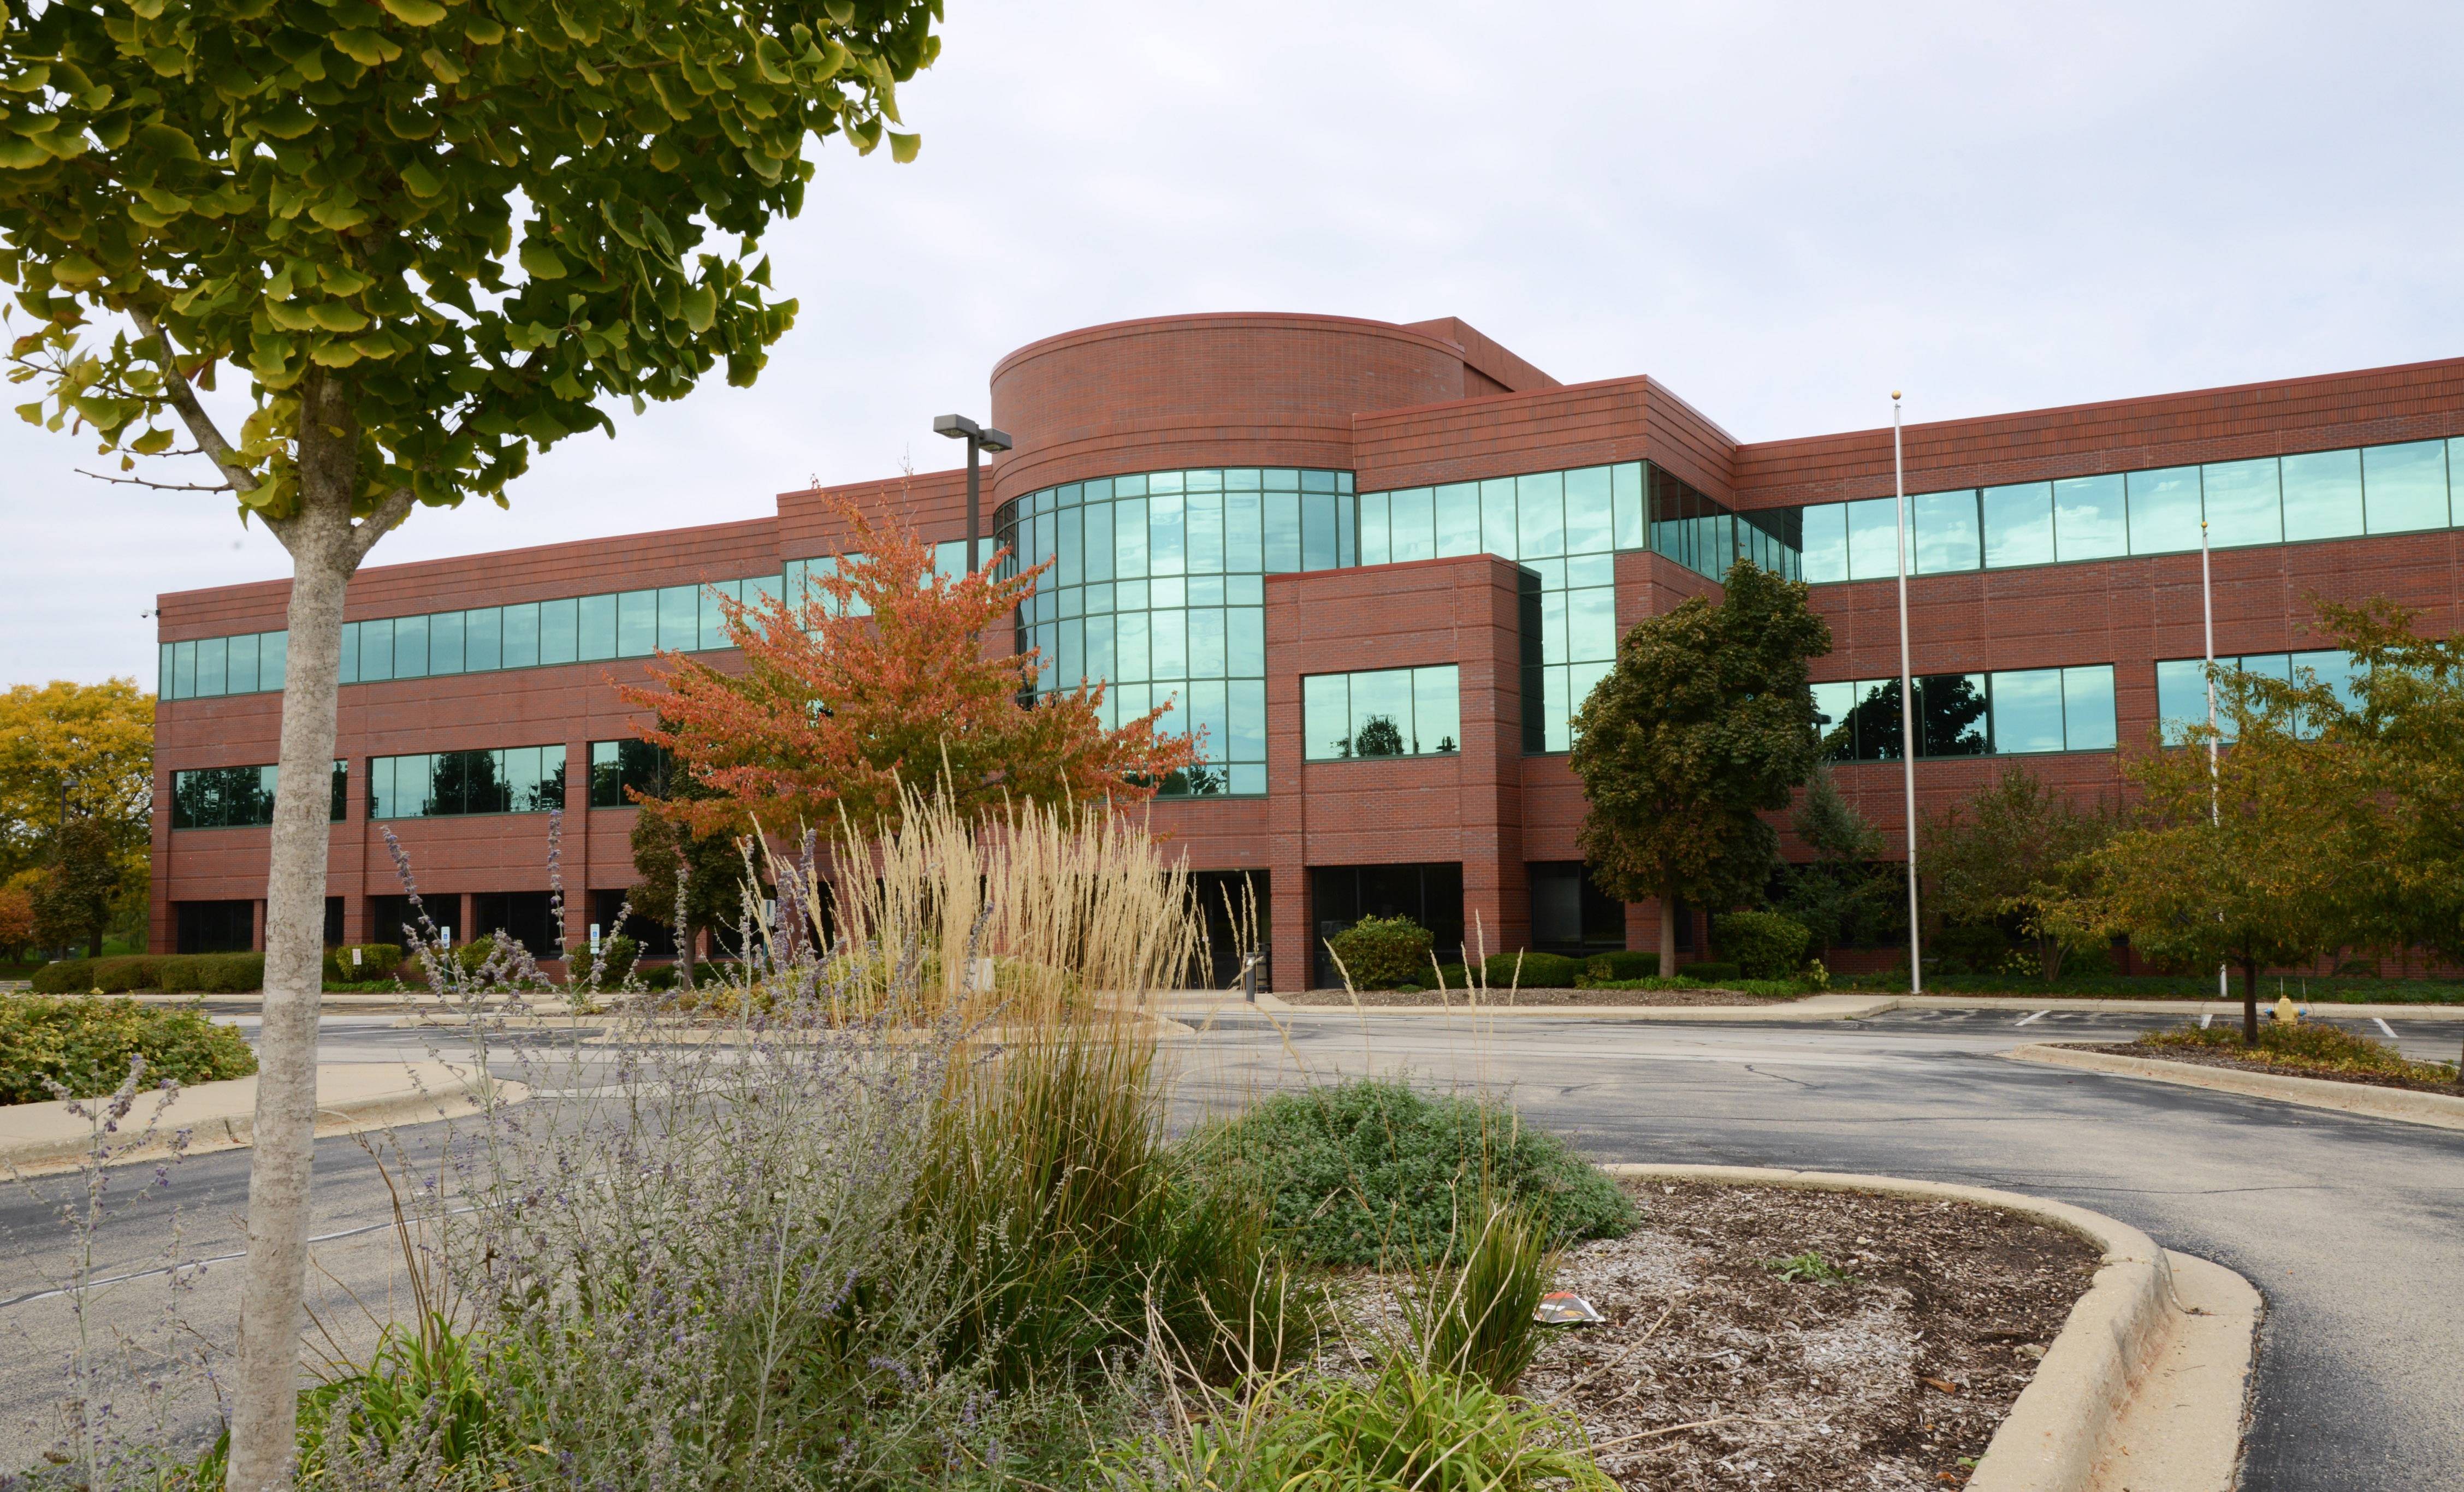 Psychiatric hospital proposed for Vernon Hills office building